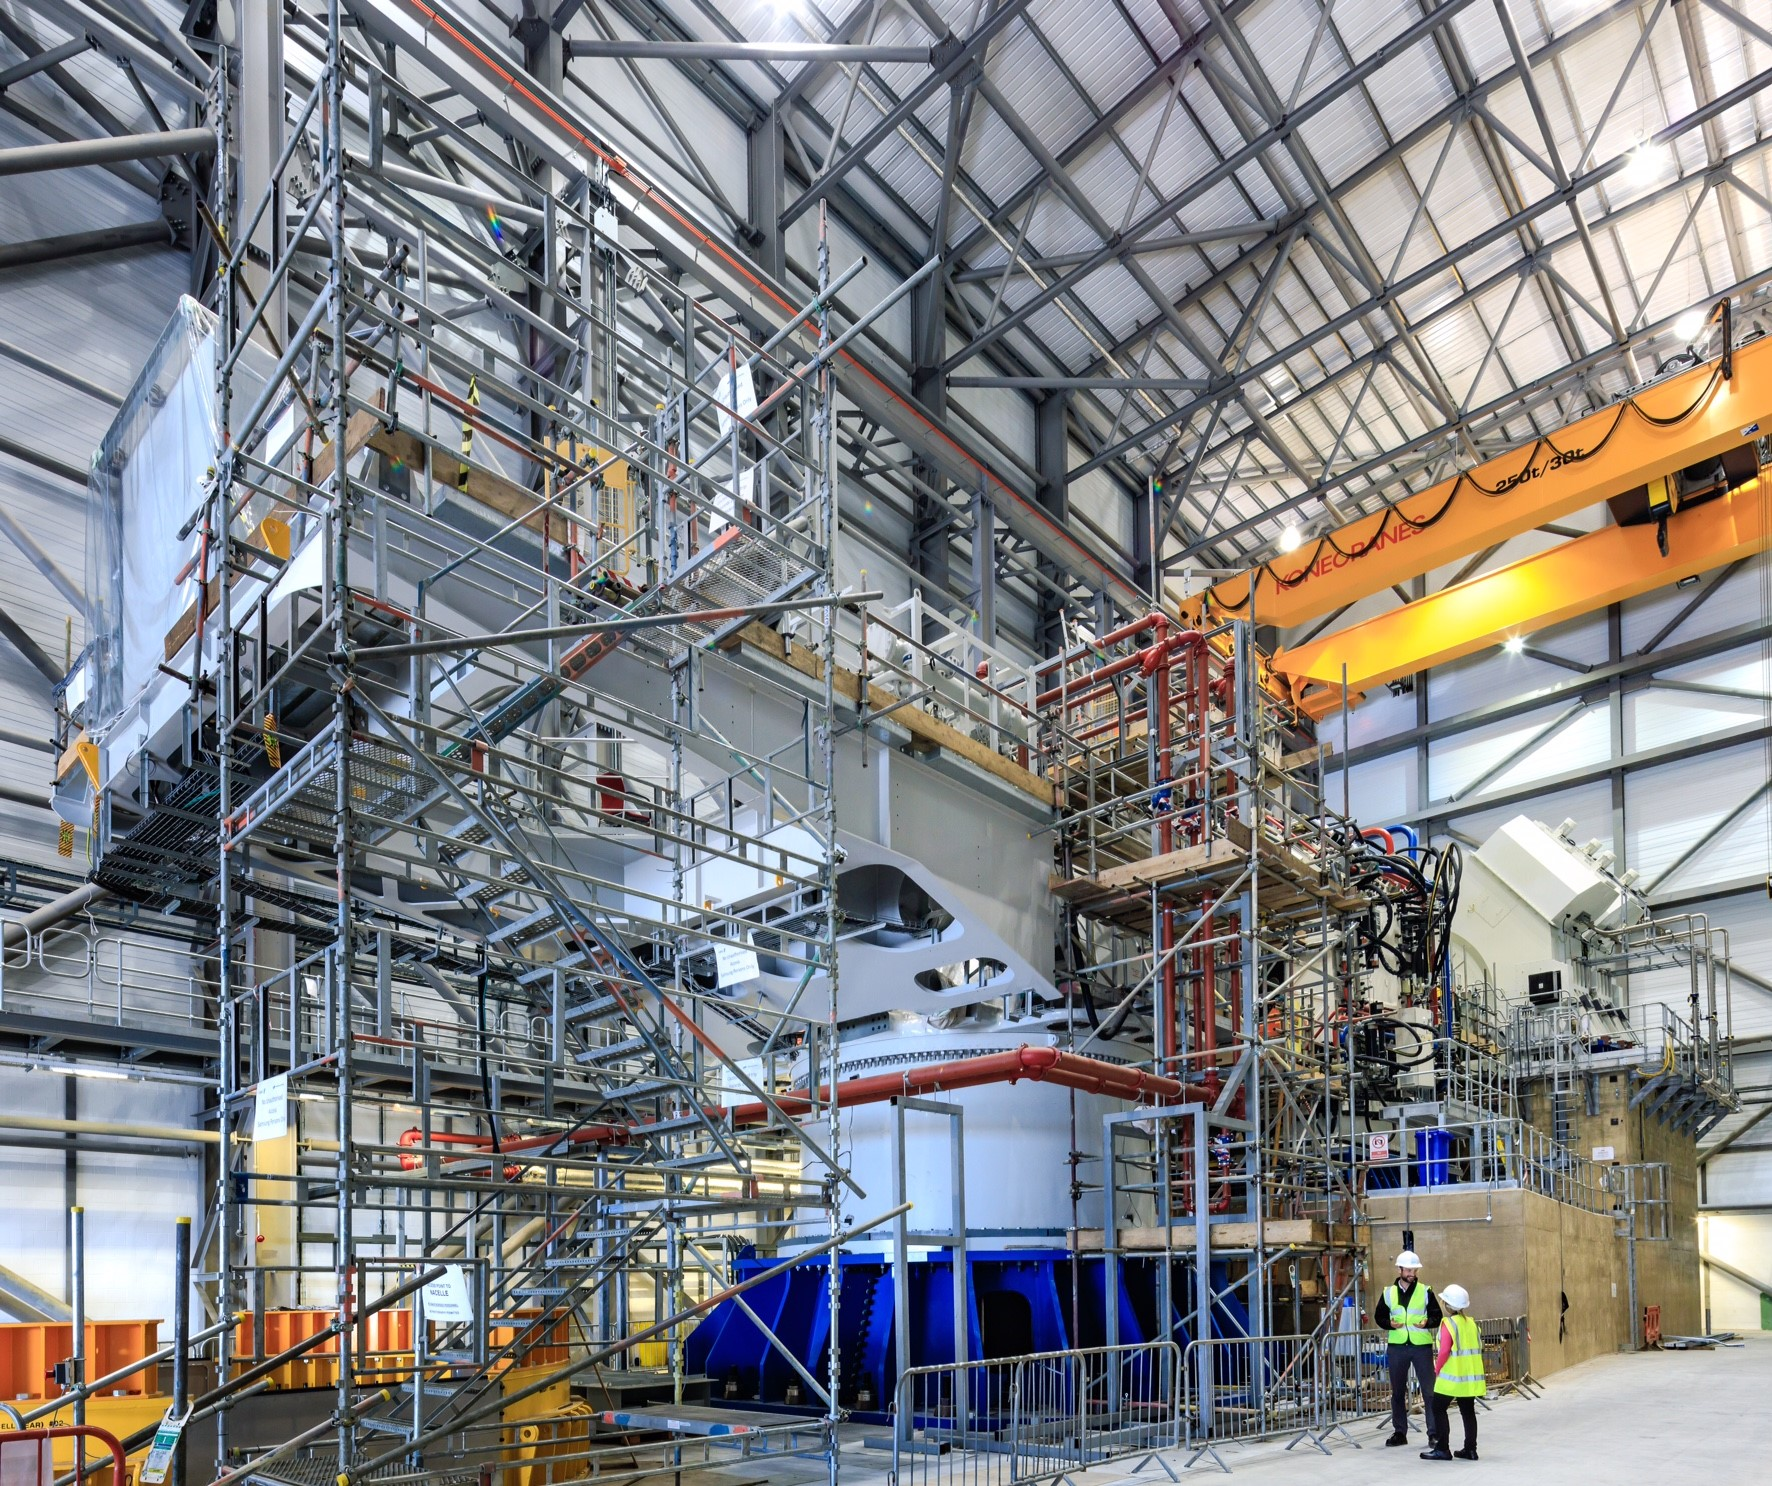 ORE Catapult's 15MW Powertrain Test Facility at the National Renewable Energy Centre in Blyth.